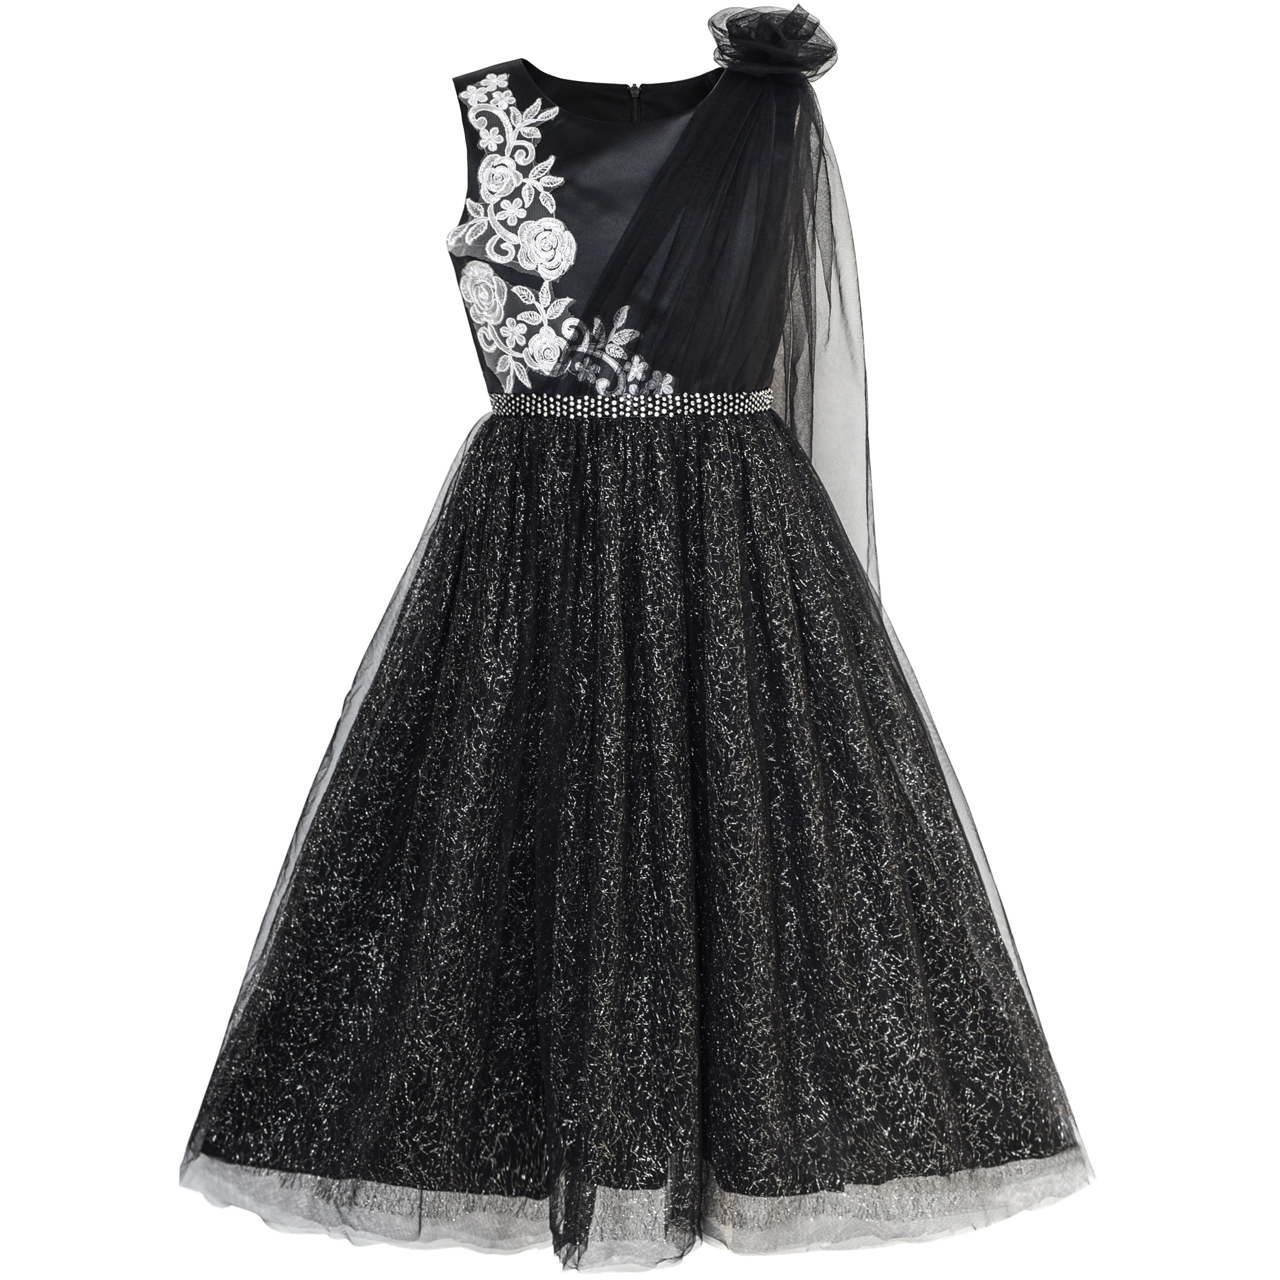 Sunny Fashion Girls Dress Black Sparkling Tulle Lace Party Prom Gown 2018 Summer Princess Wedding Dresses Kids Clothes Size 6-12 sunny fashion girls dress lace collar princess elegant birthday party 2017 summer wedding dresses children clothes size 4 12